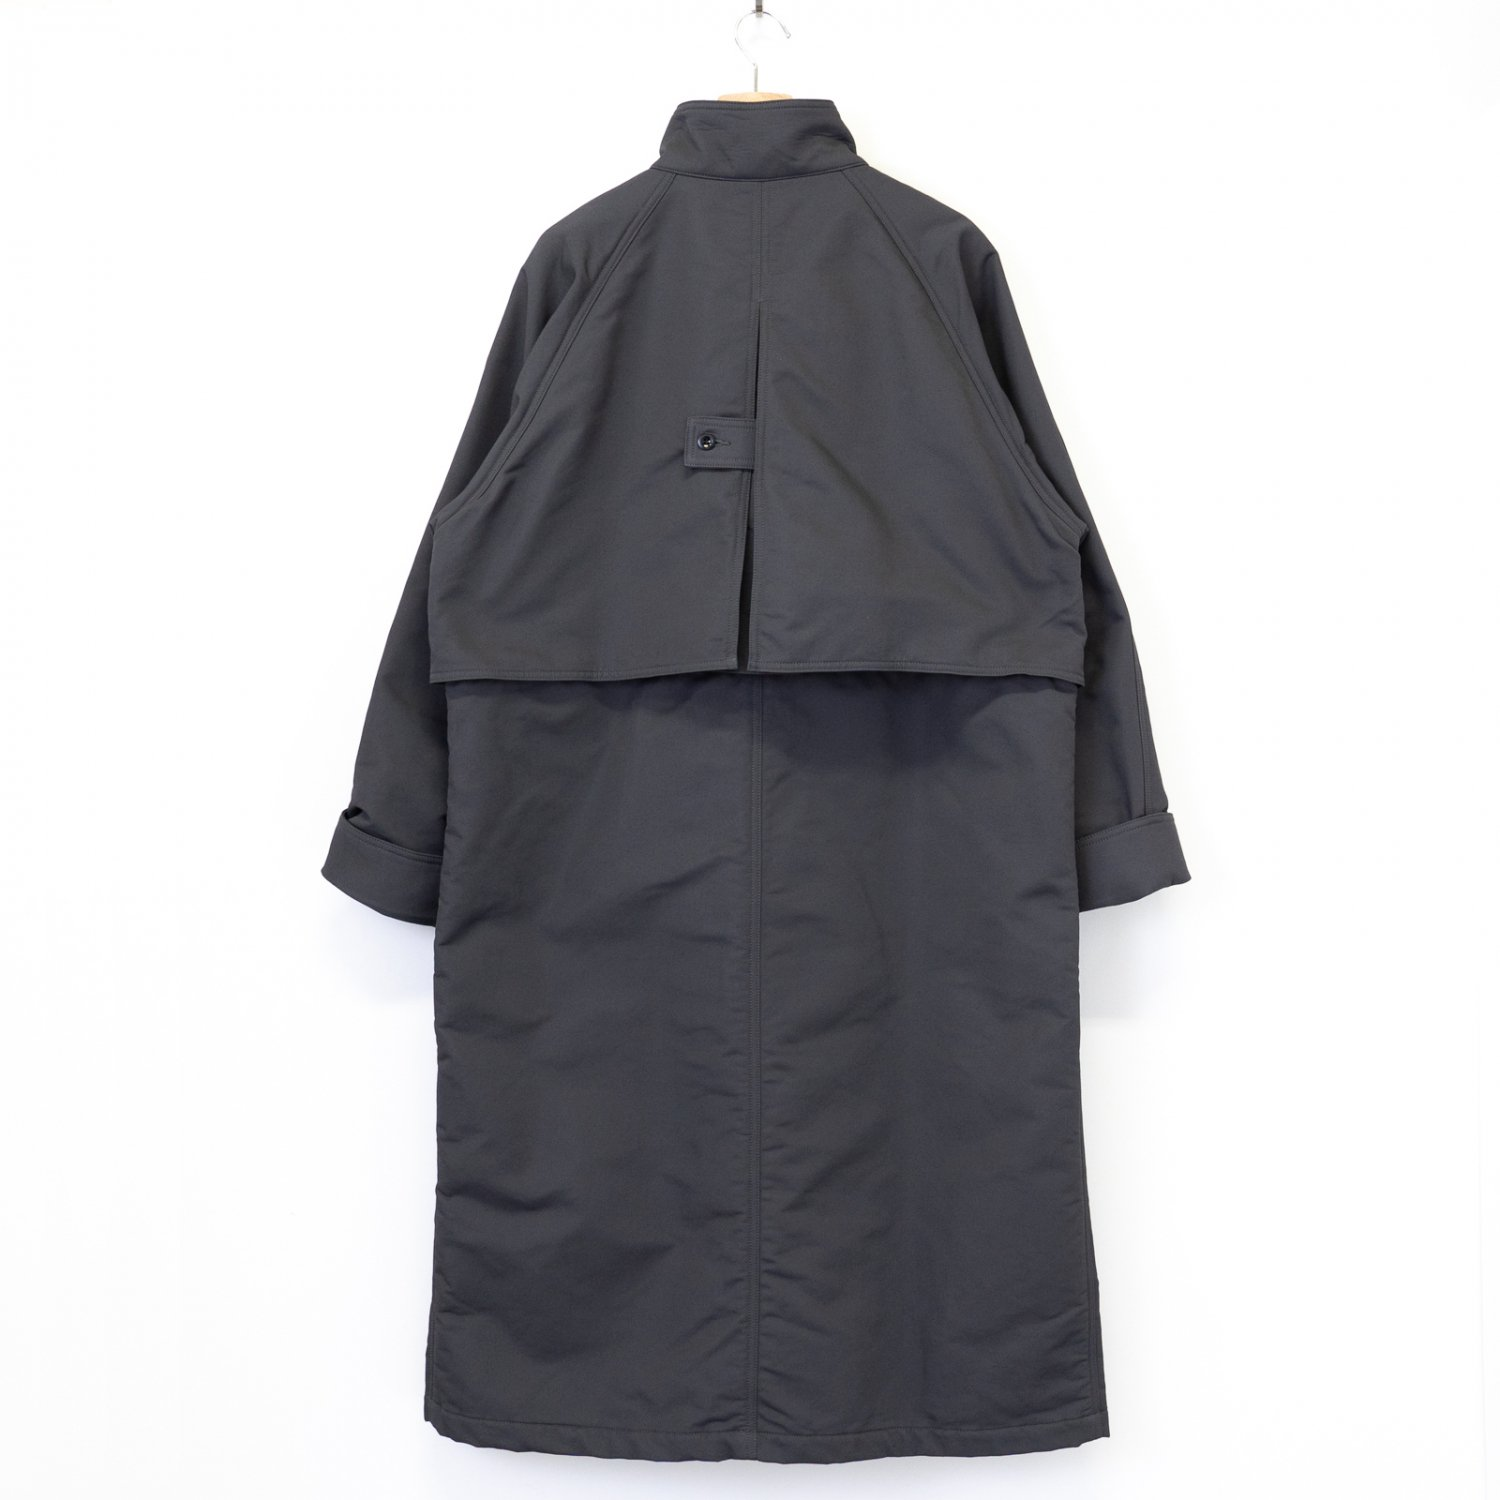 Graphpaper * Double Face Twill Stand Collar Coat * C.Gray